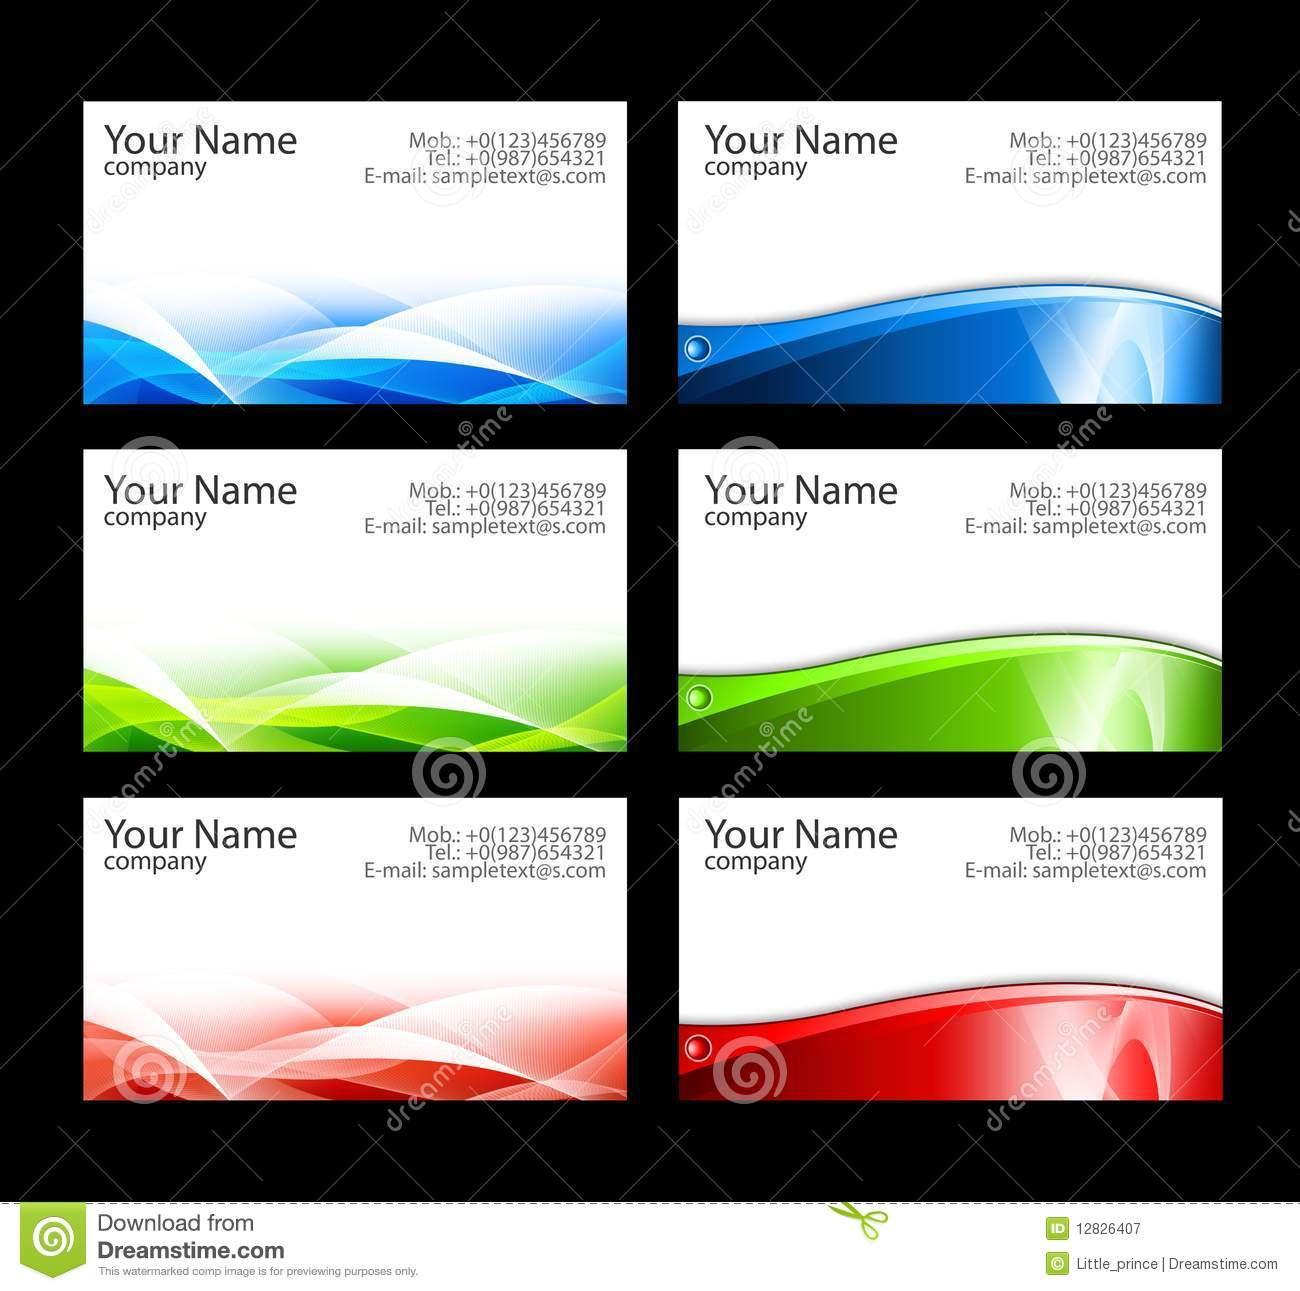 Business Cards Templates Stock Illustration Illustration Of Paper - Free business card layout template